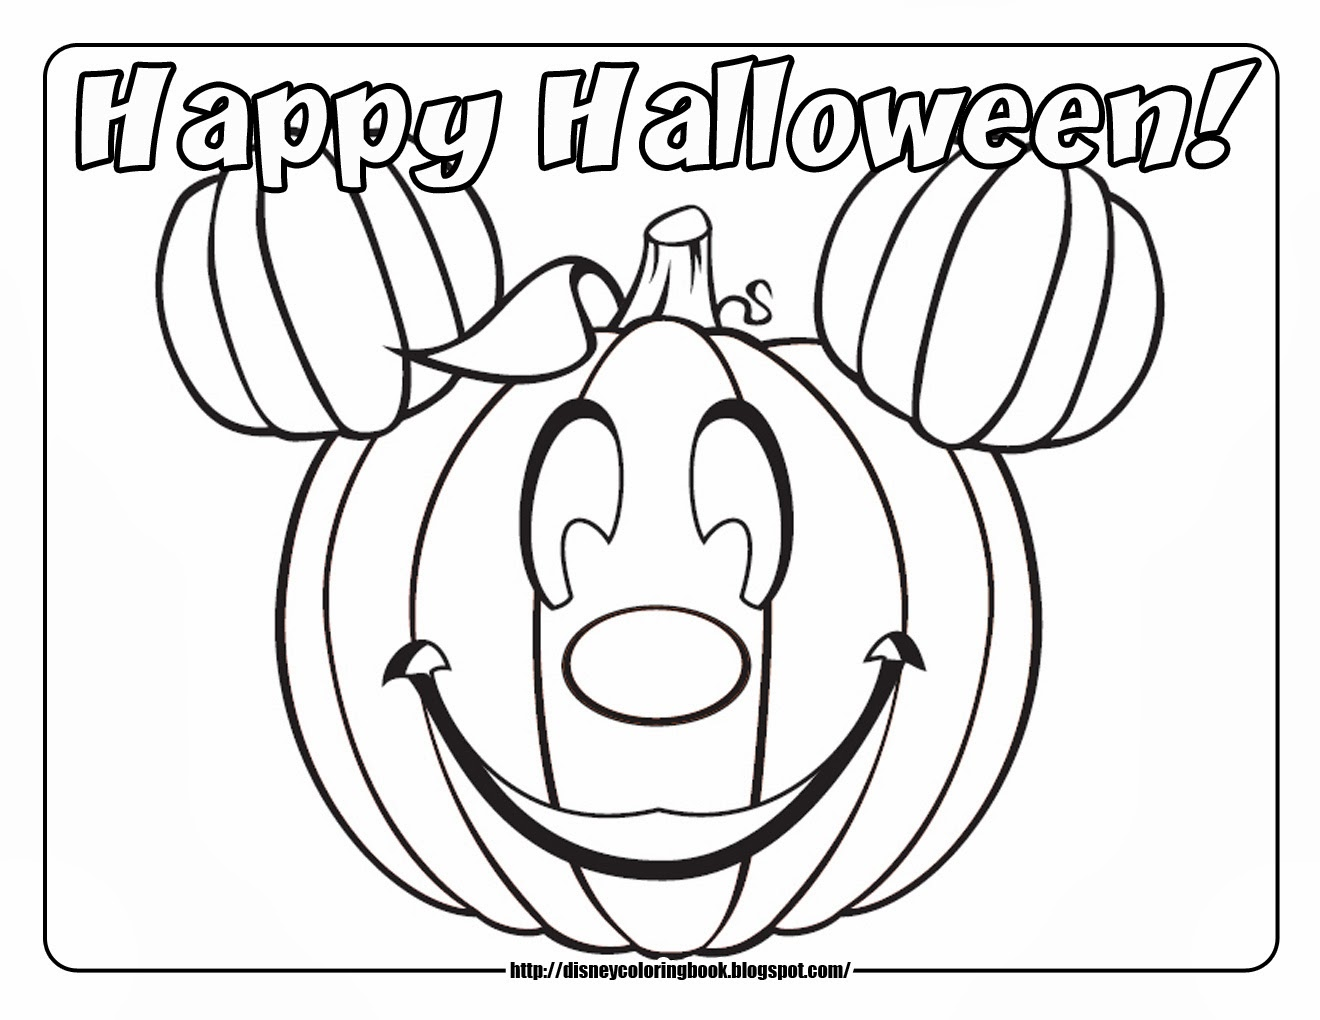 Halloween coloring pages free printable minnesota miranda for Coloring pages for halloween free printable